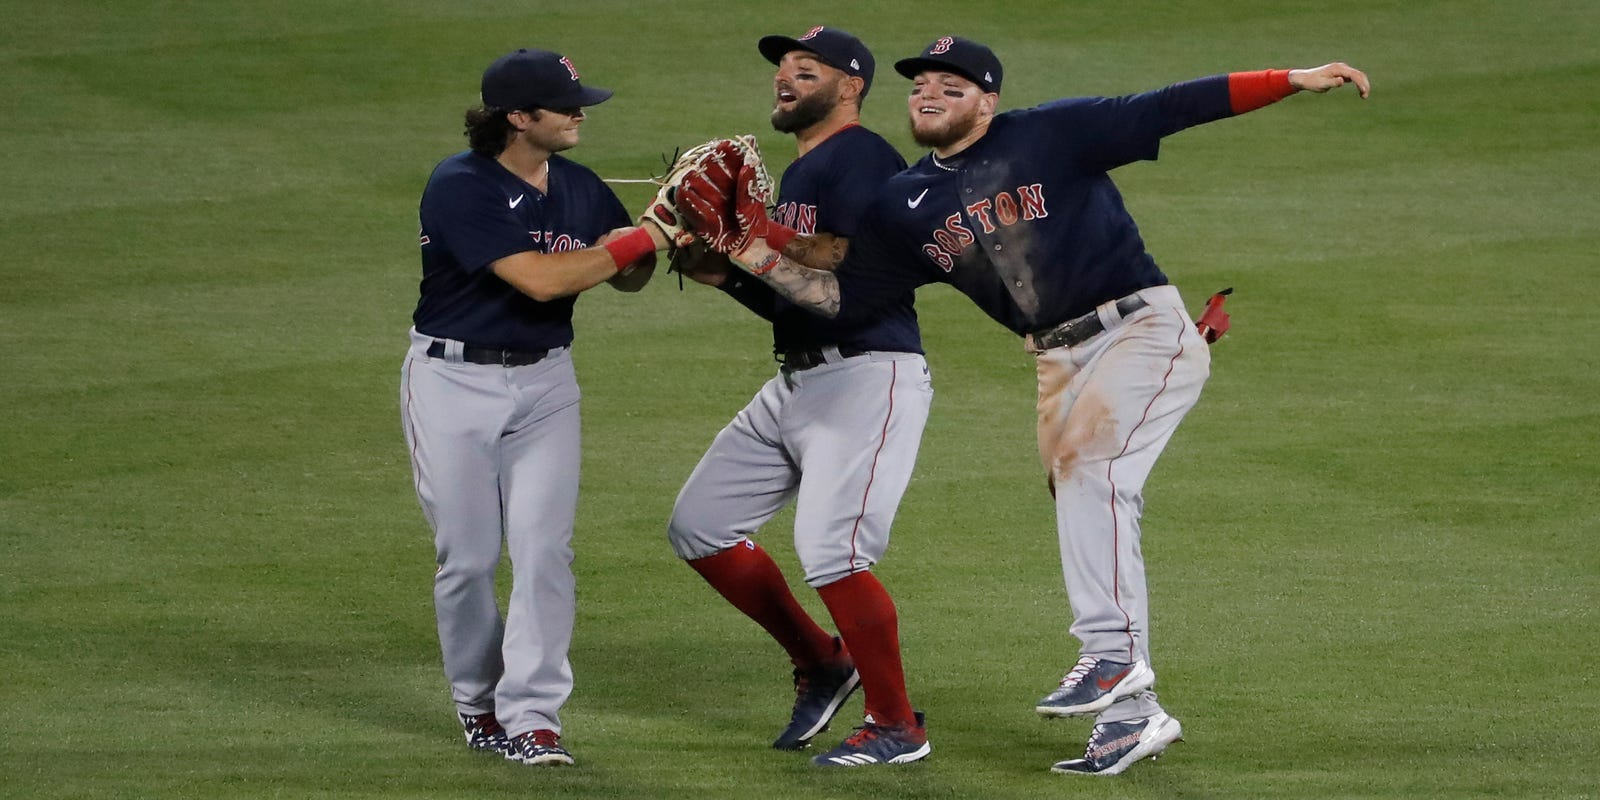 Indians' Bieber strikes out 13 against Twins to tie record